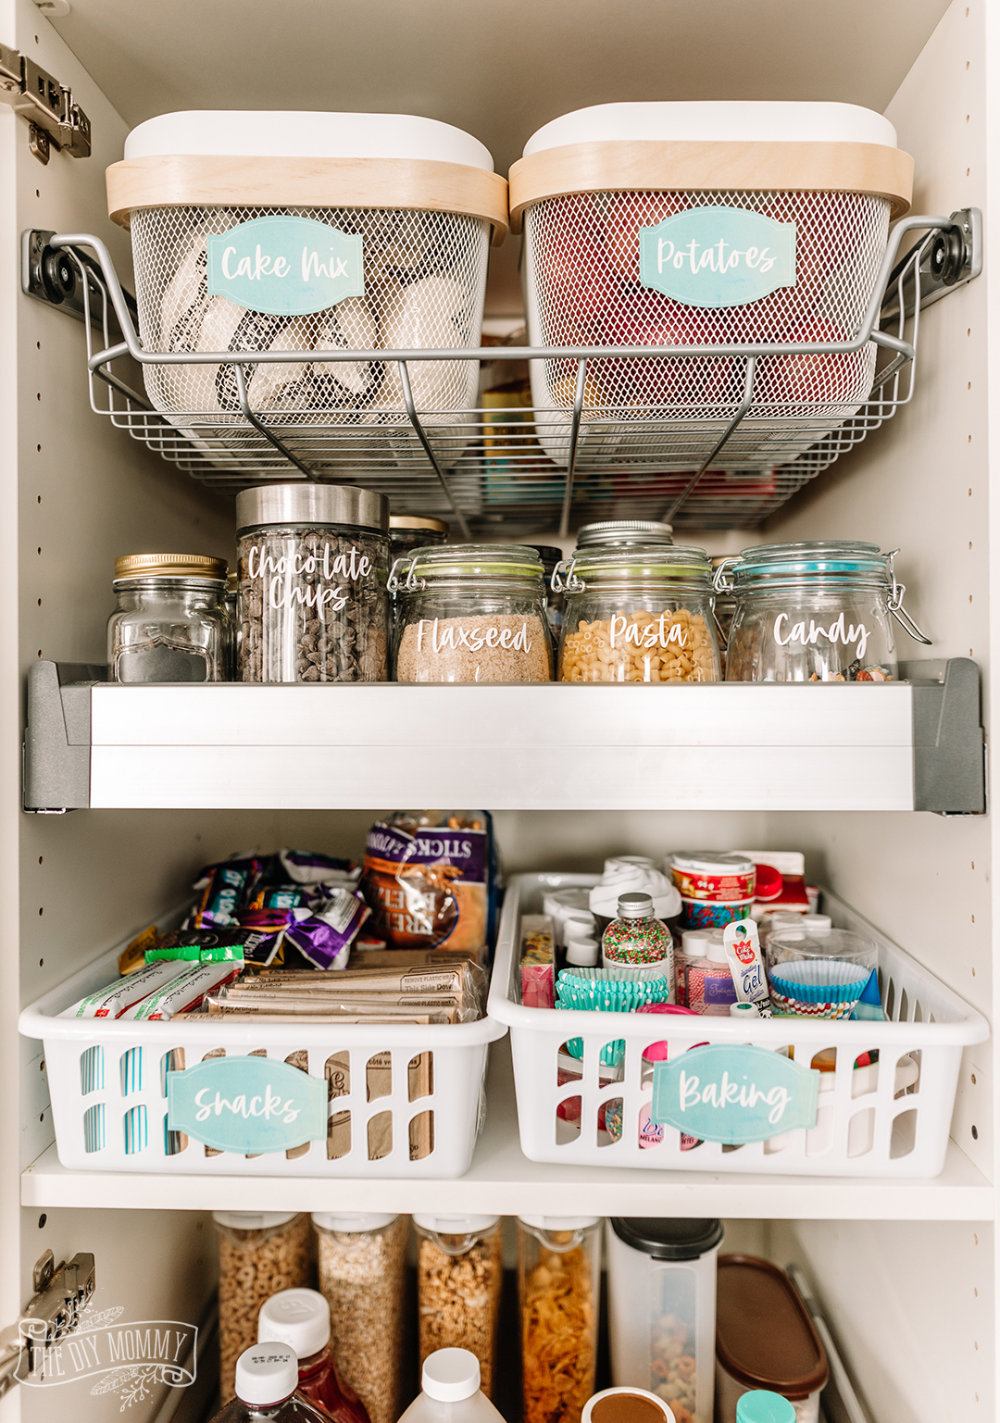 free printable pantry labels the diy mommy in 2020 on clever ideas for diy kitchen cabinet organization tips for organizers id=59155